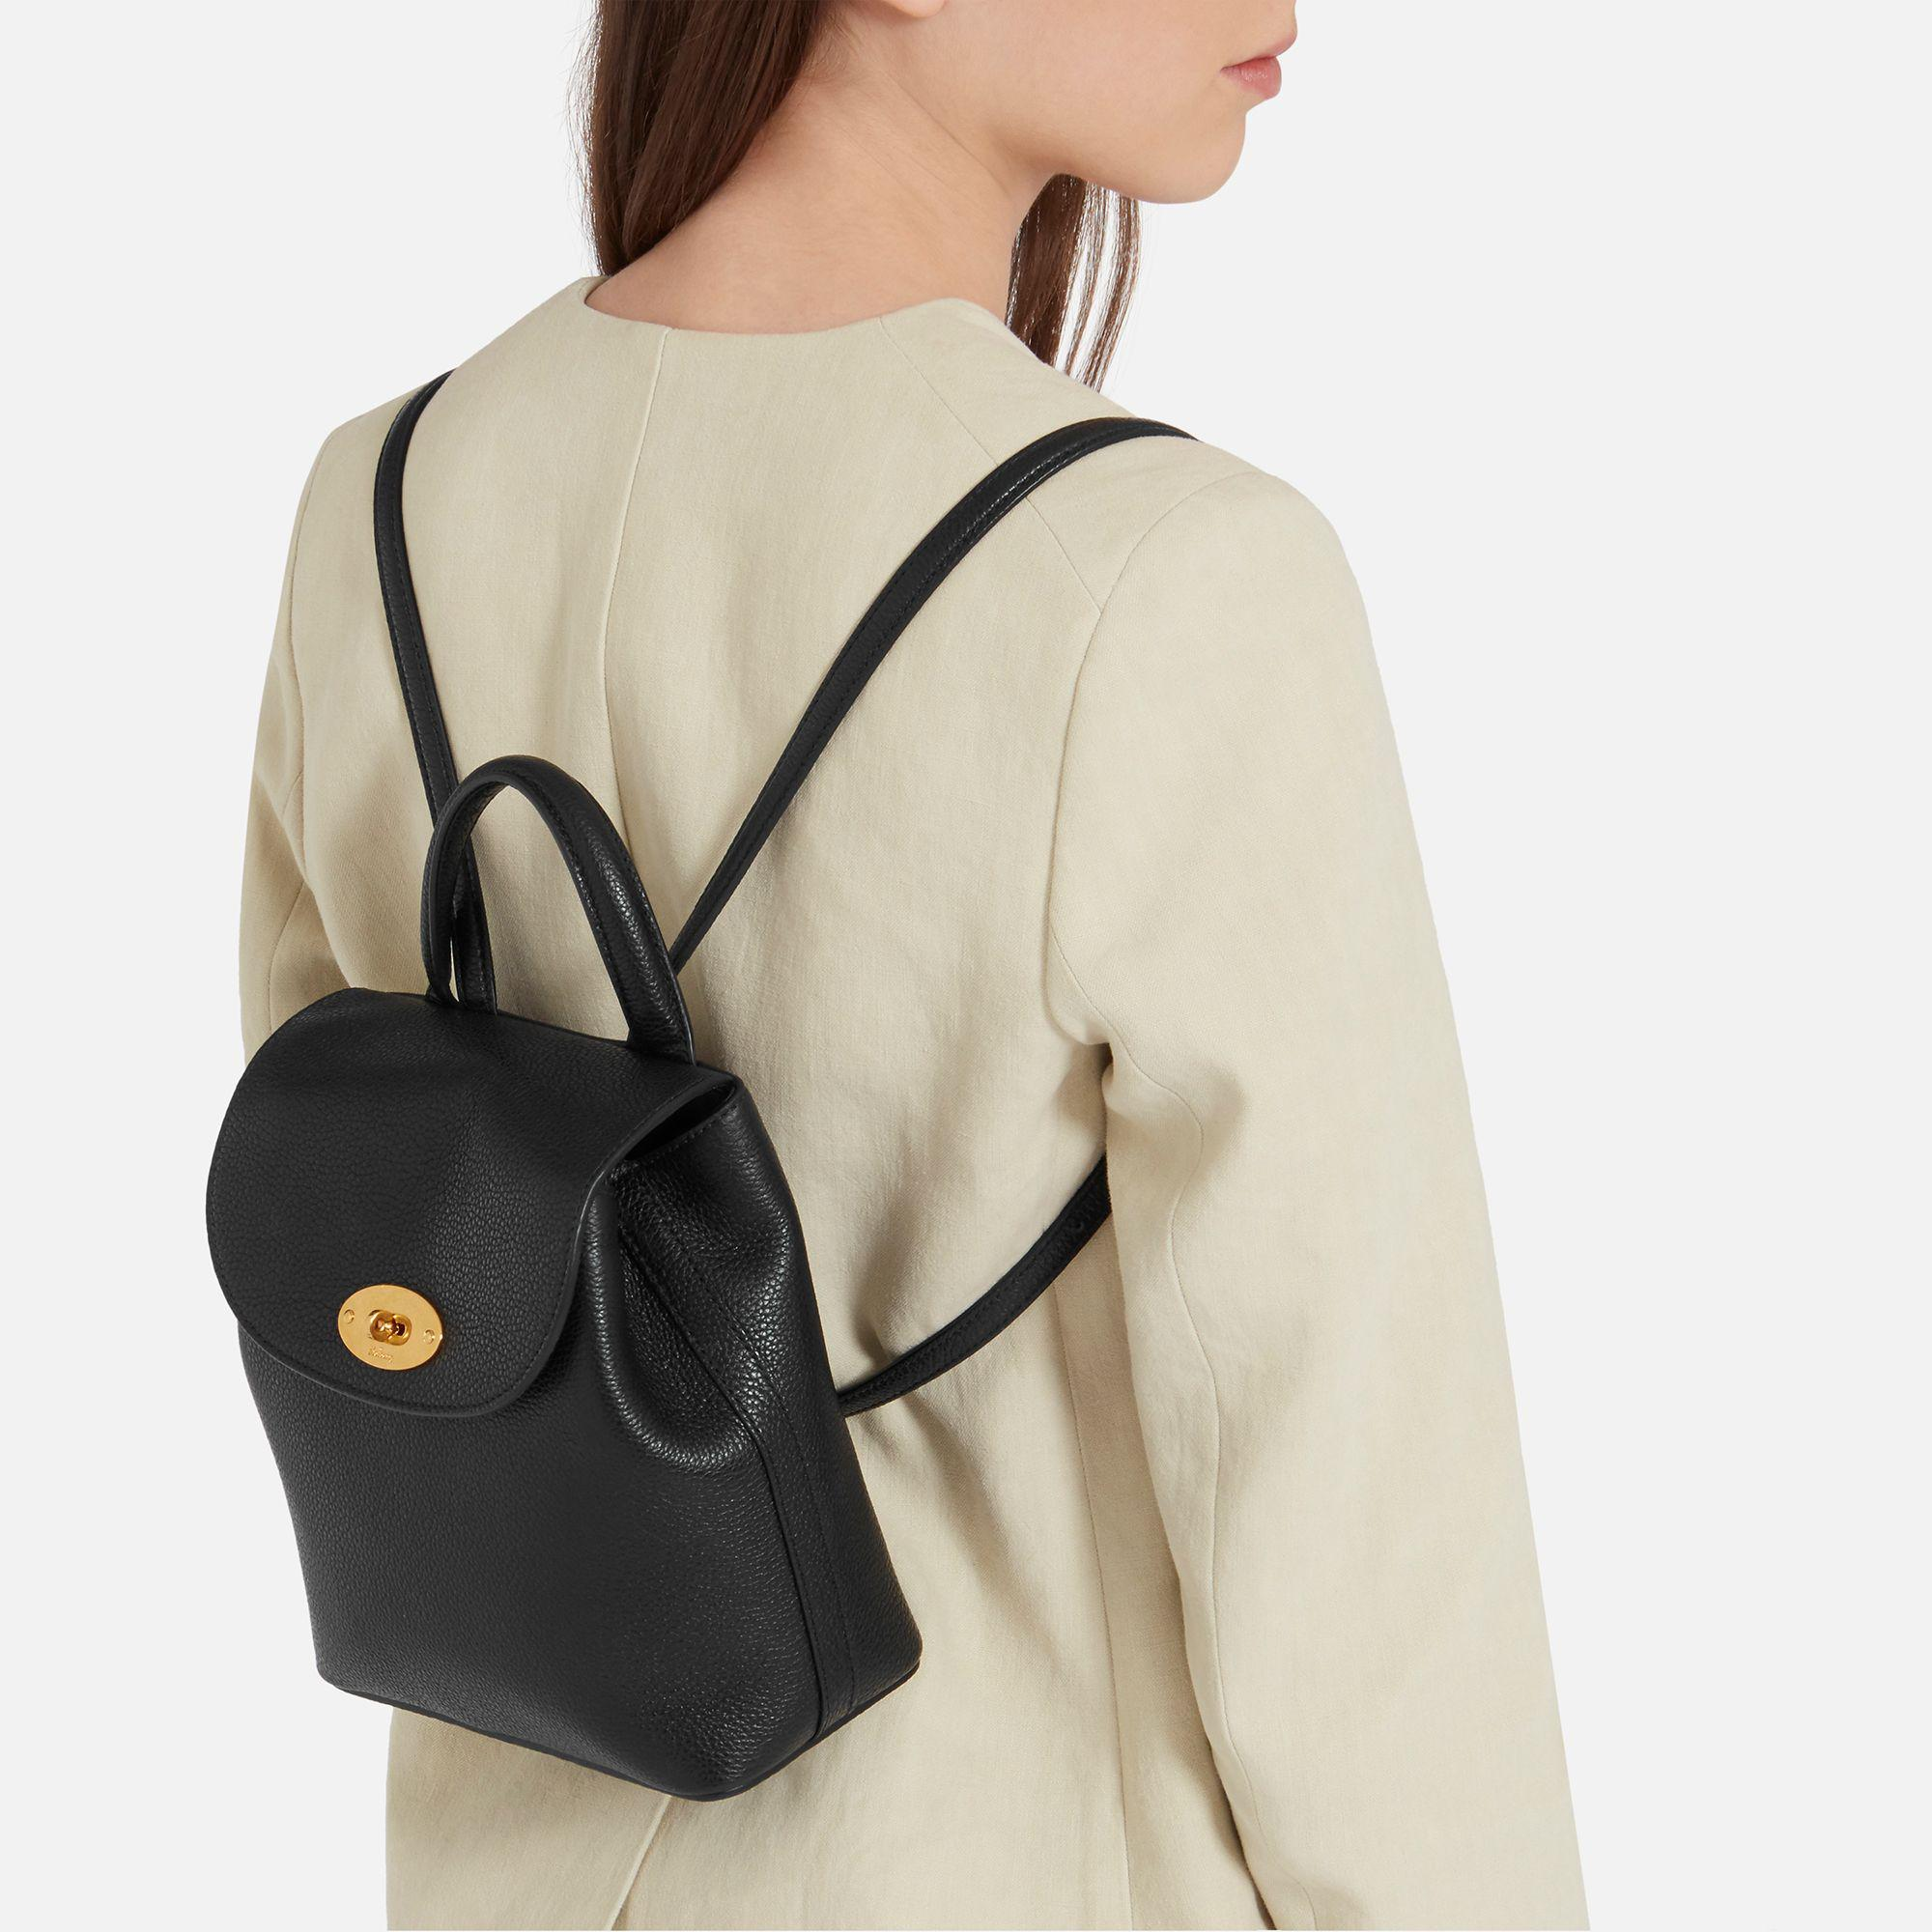 c0295dced15 ... netherlands mulberry black mini bayswater backpack lyst. view  fullscreen 19d03 68fc1